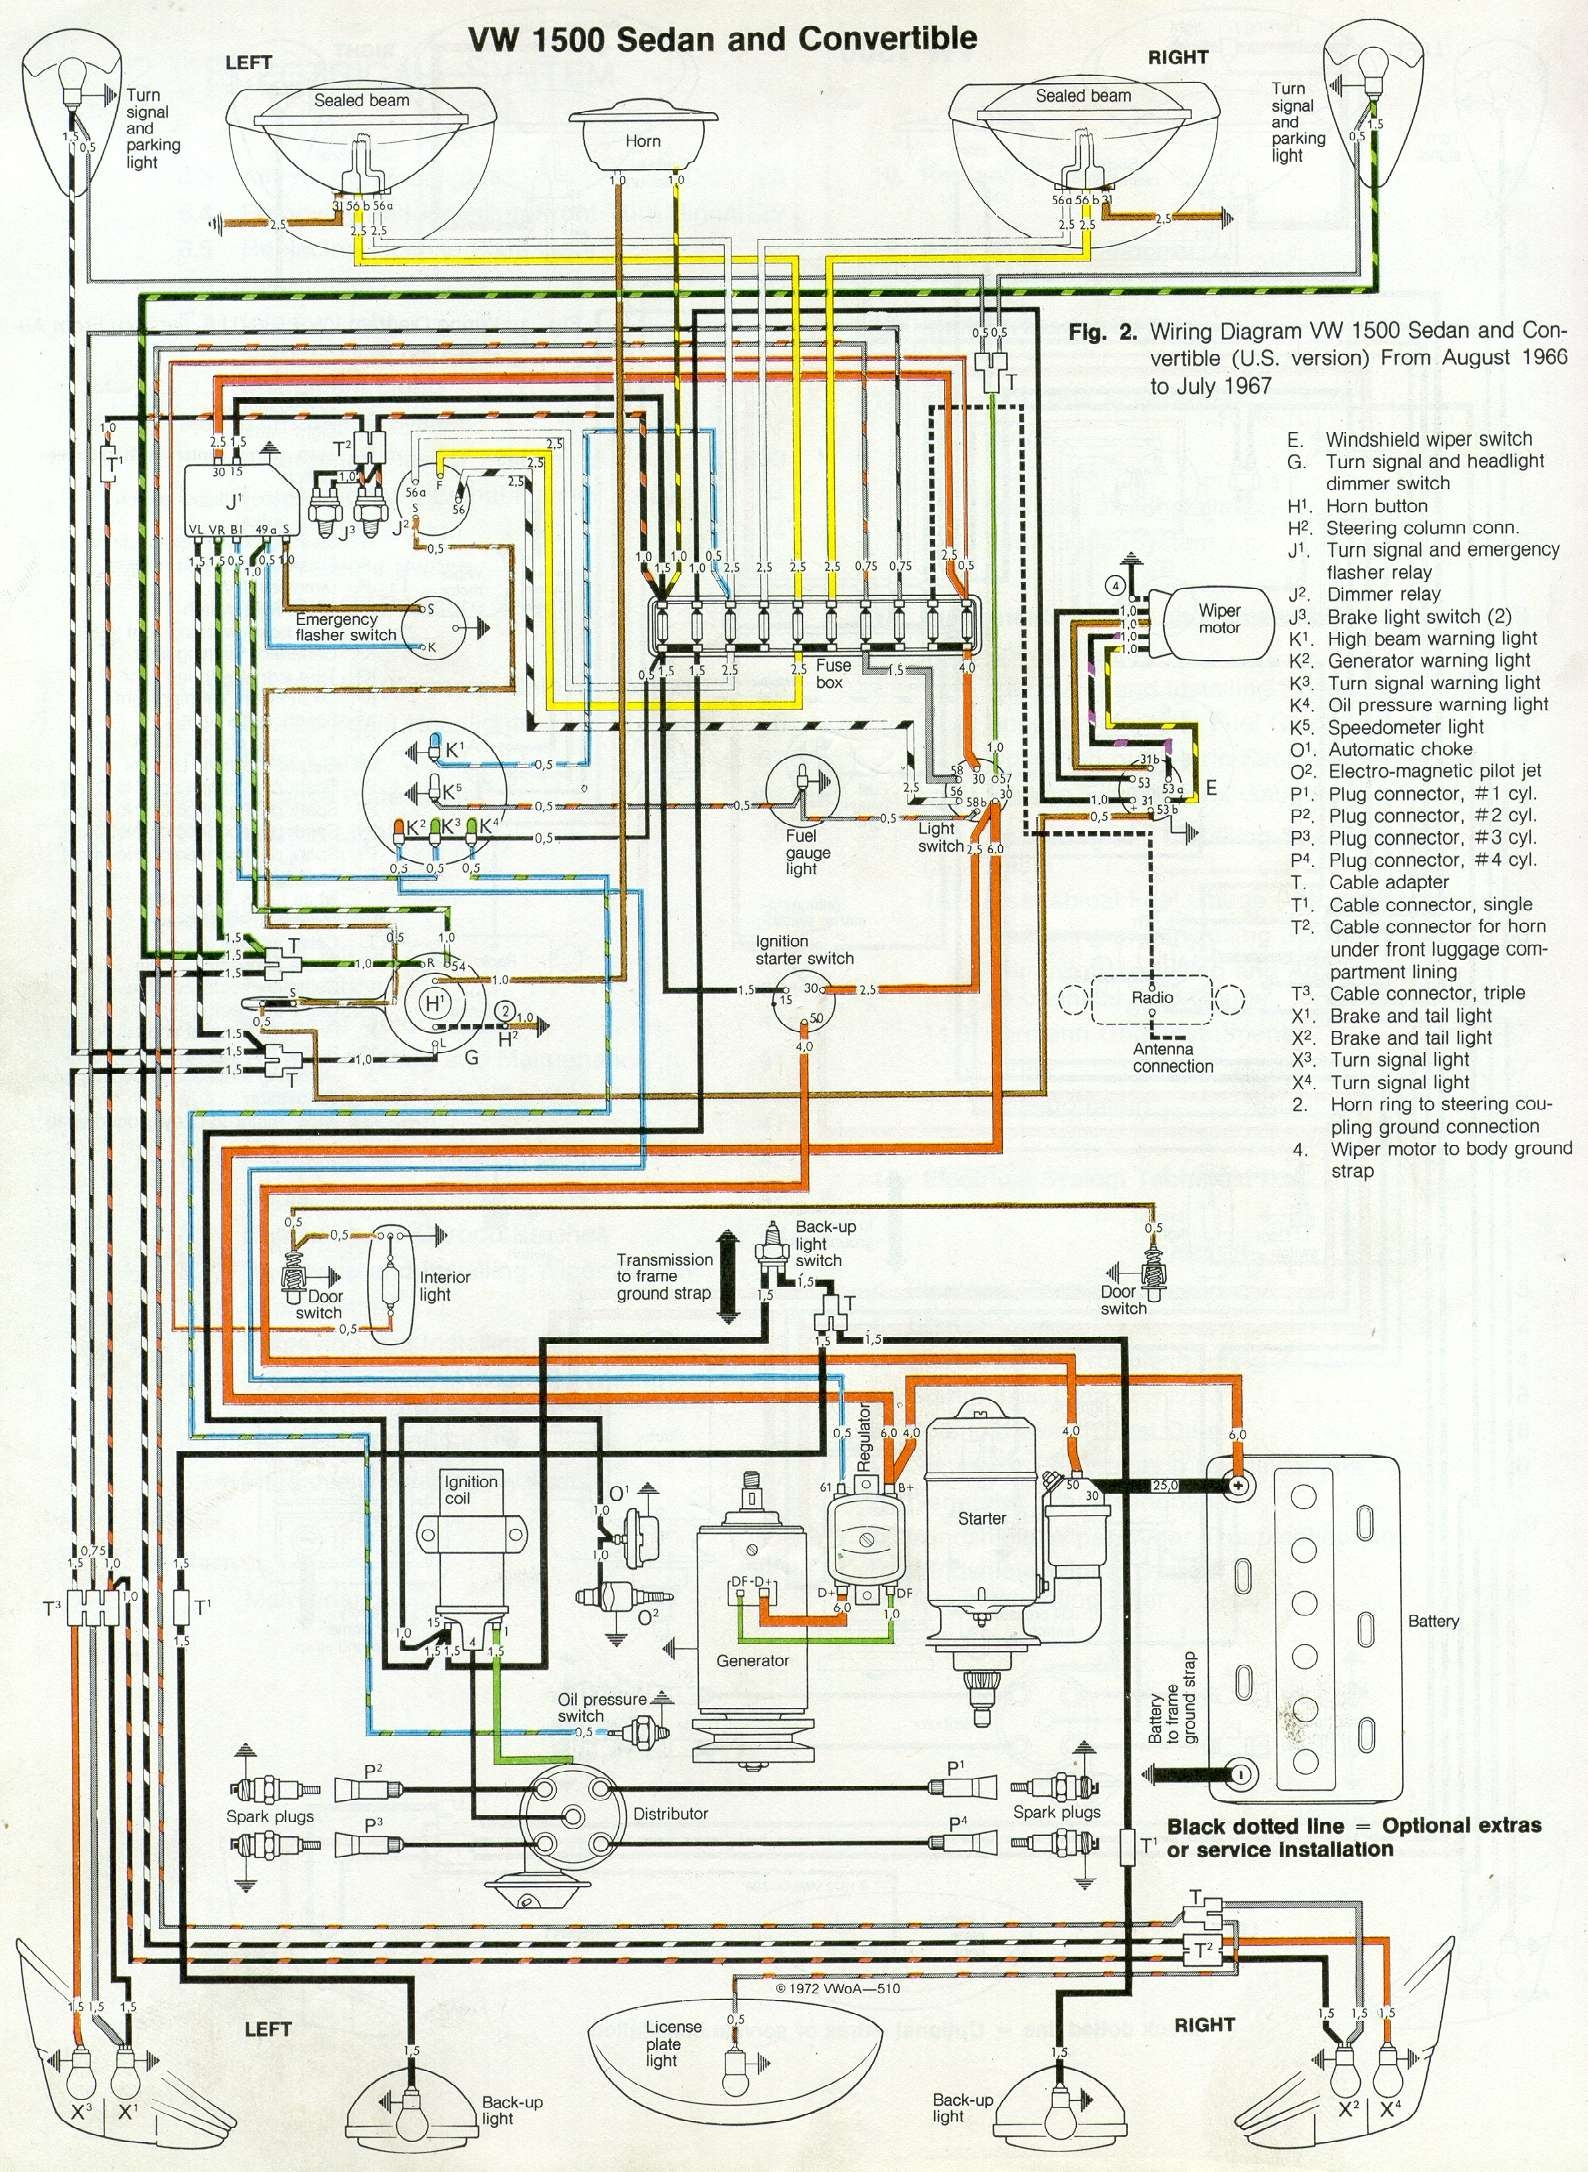 volkswagen wiring diagram 66 and 67 vw beetle wiring diagram 1967 vw beetle 66 and 67 vw beetle wiring